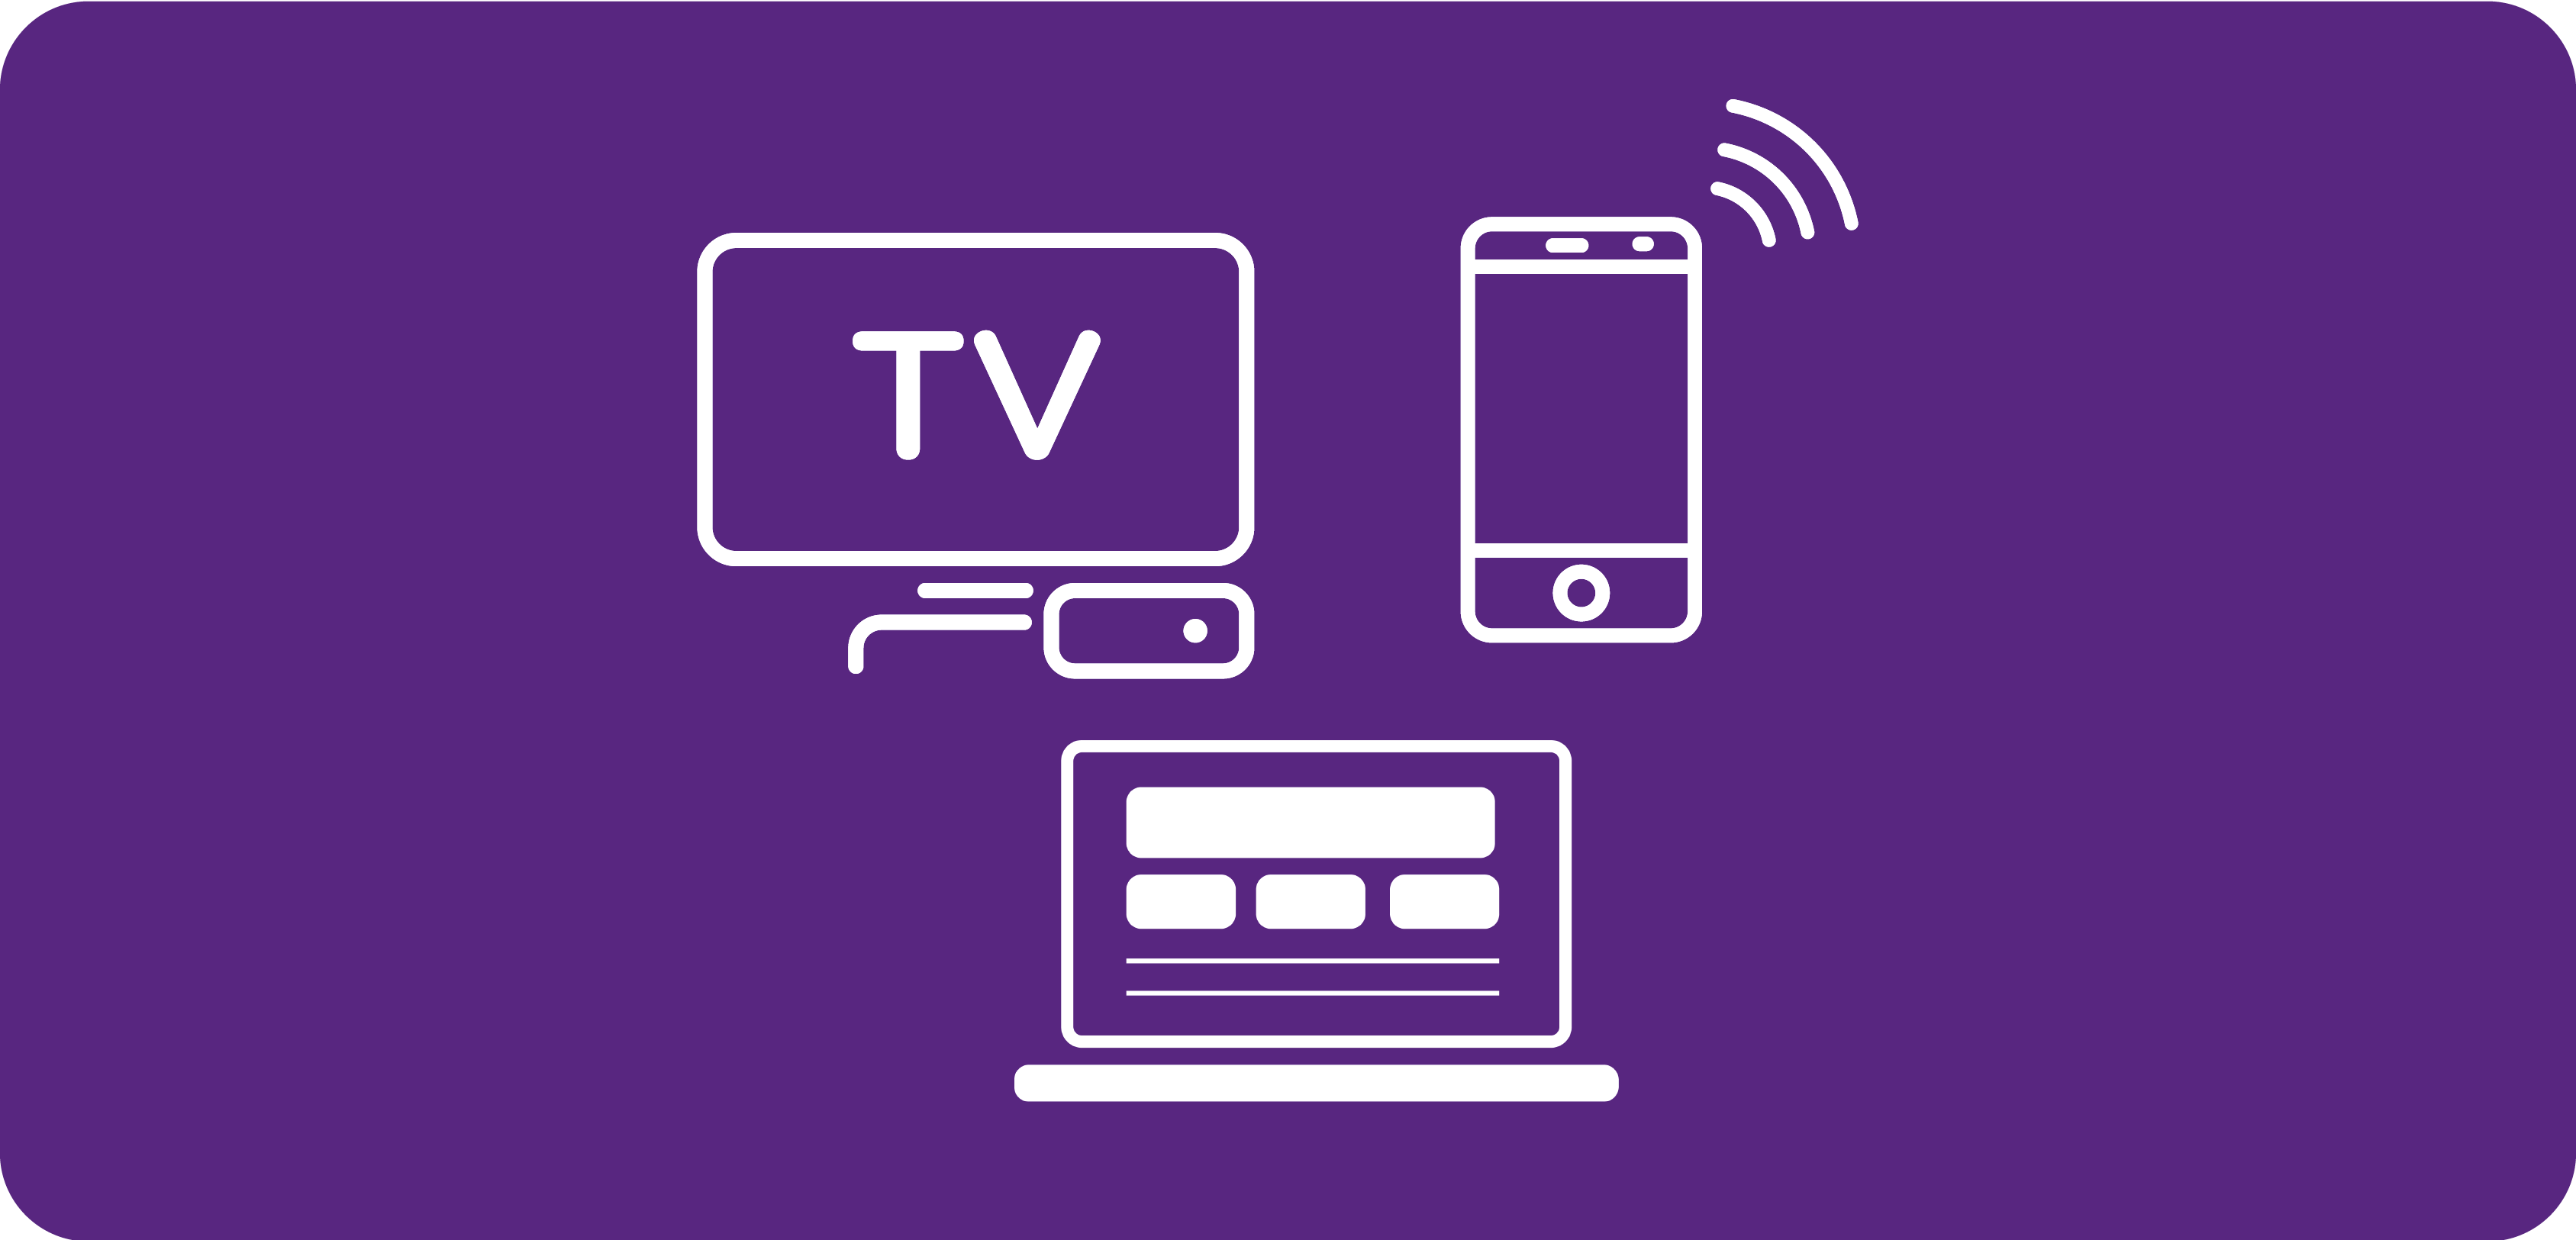 Link to Markets and Competition. White TV, mobile and laptop icons on purple background